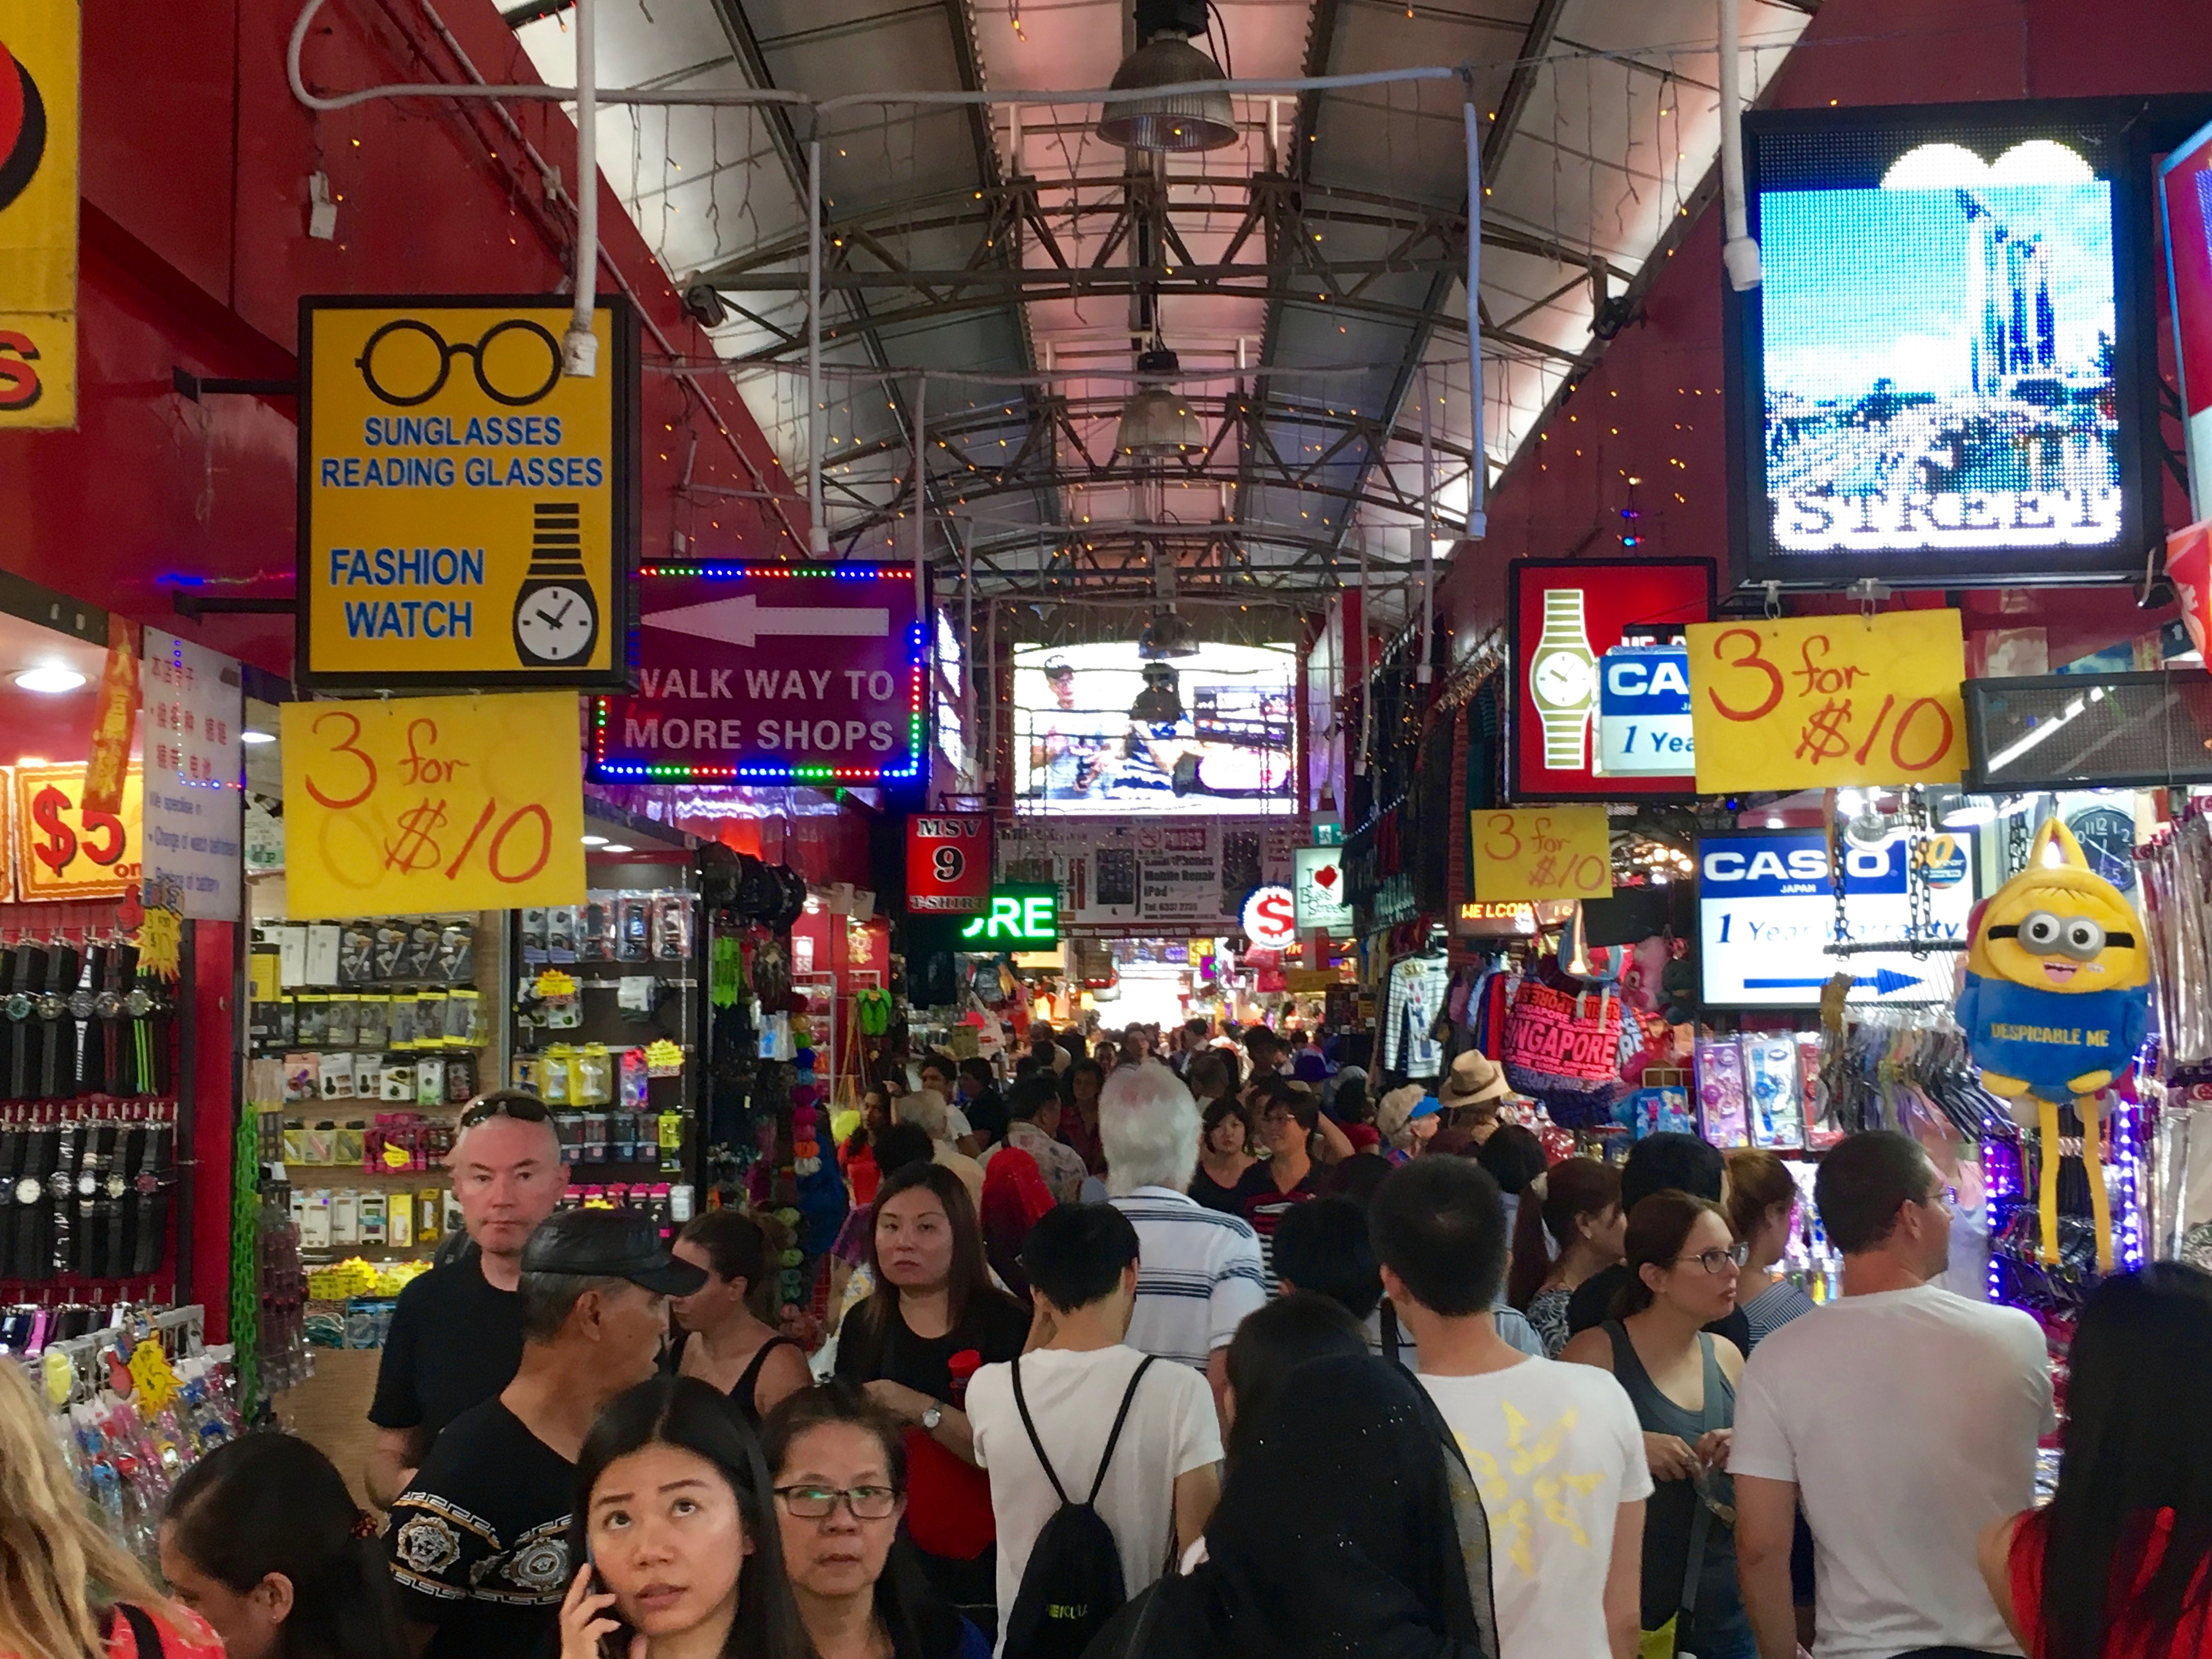 Cheap Insurance For Teens >> Bugis Street Market | Little India & Kampong Glam, Singapore Little India & Kampong Glam ...